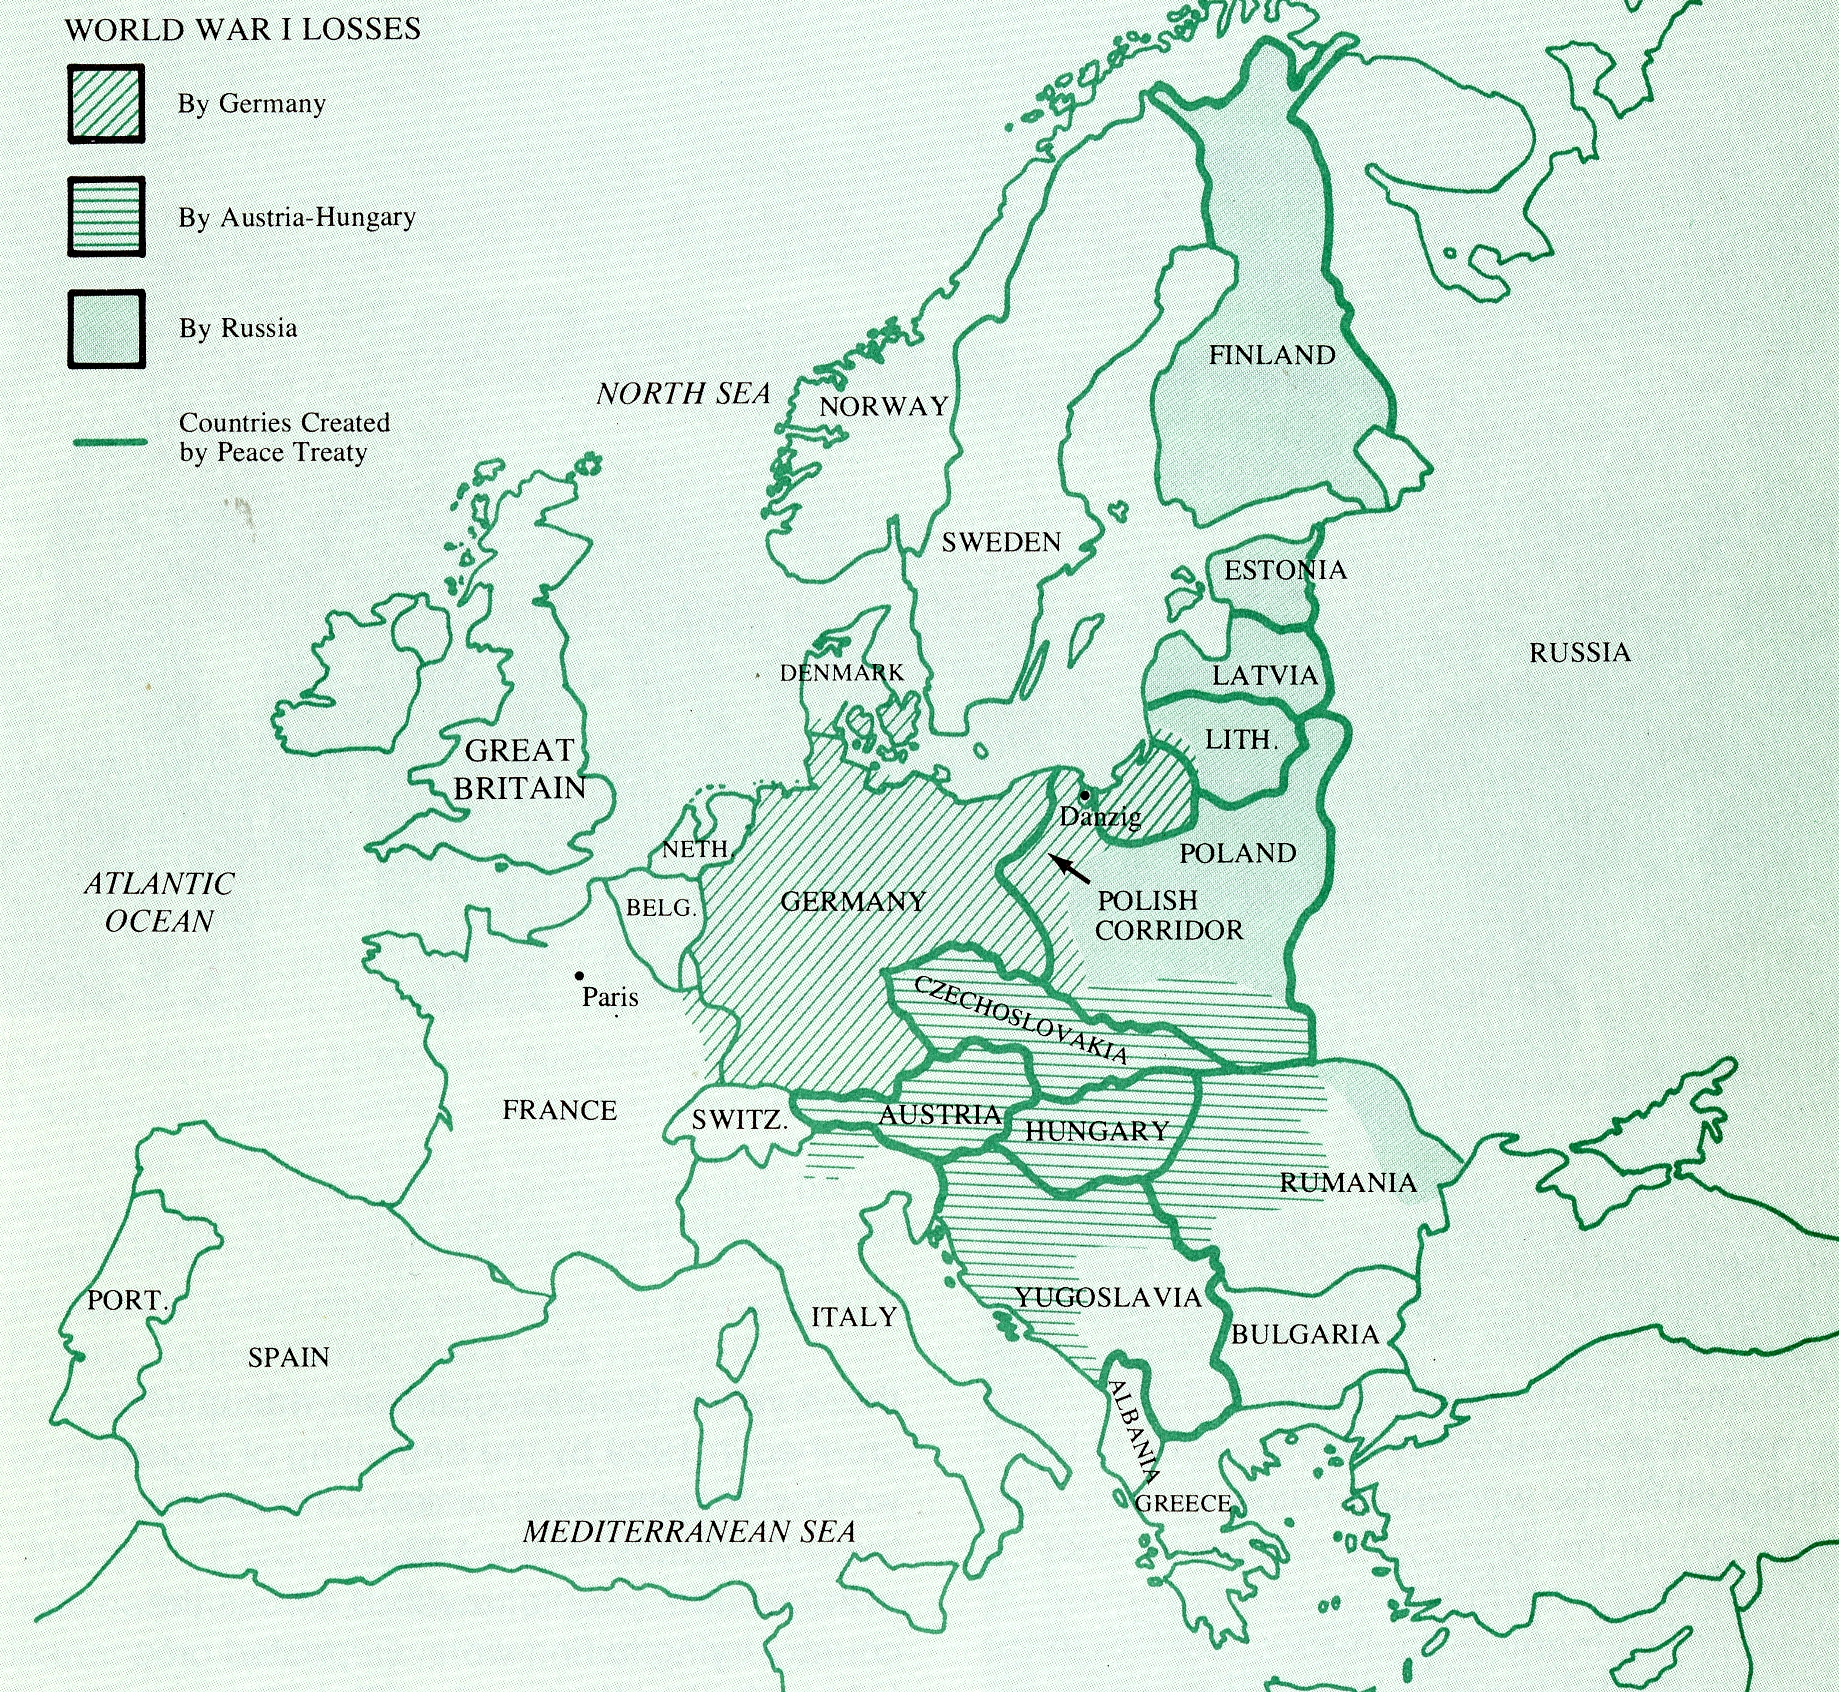 Map of World War 1 losses from the Treaty of Versailles